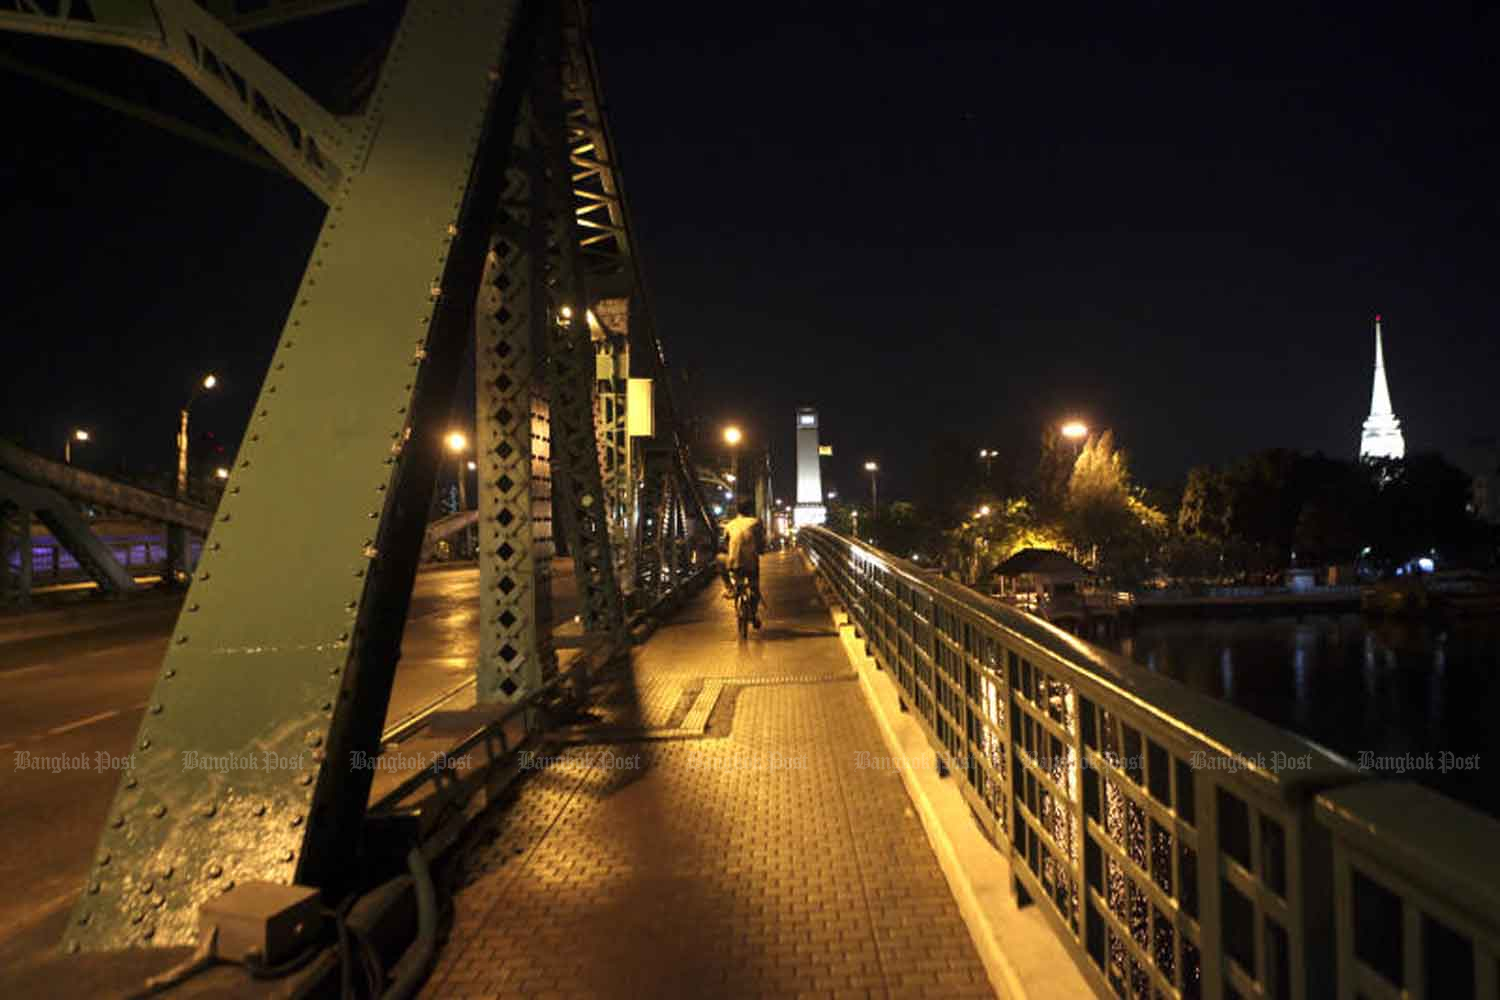 Night-time silence like this on the Memorial Bridge in Bangkok will end on Monday, when the government lifts the curfew imposed to control Covid-19. (Photo: Arnun Chonmahatrakool)